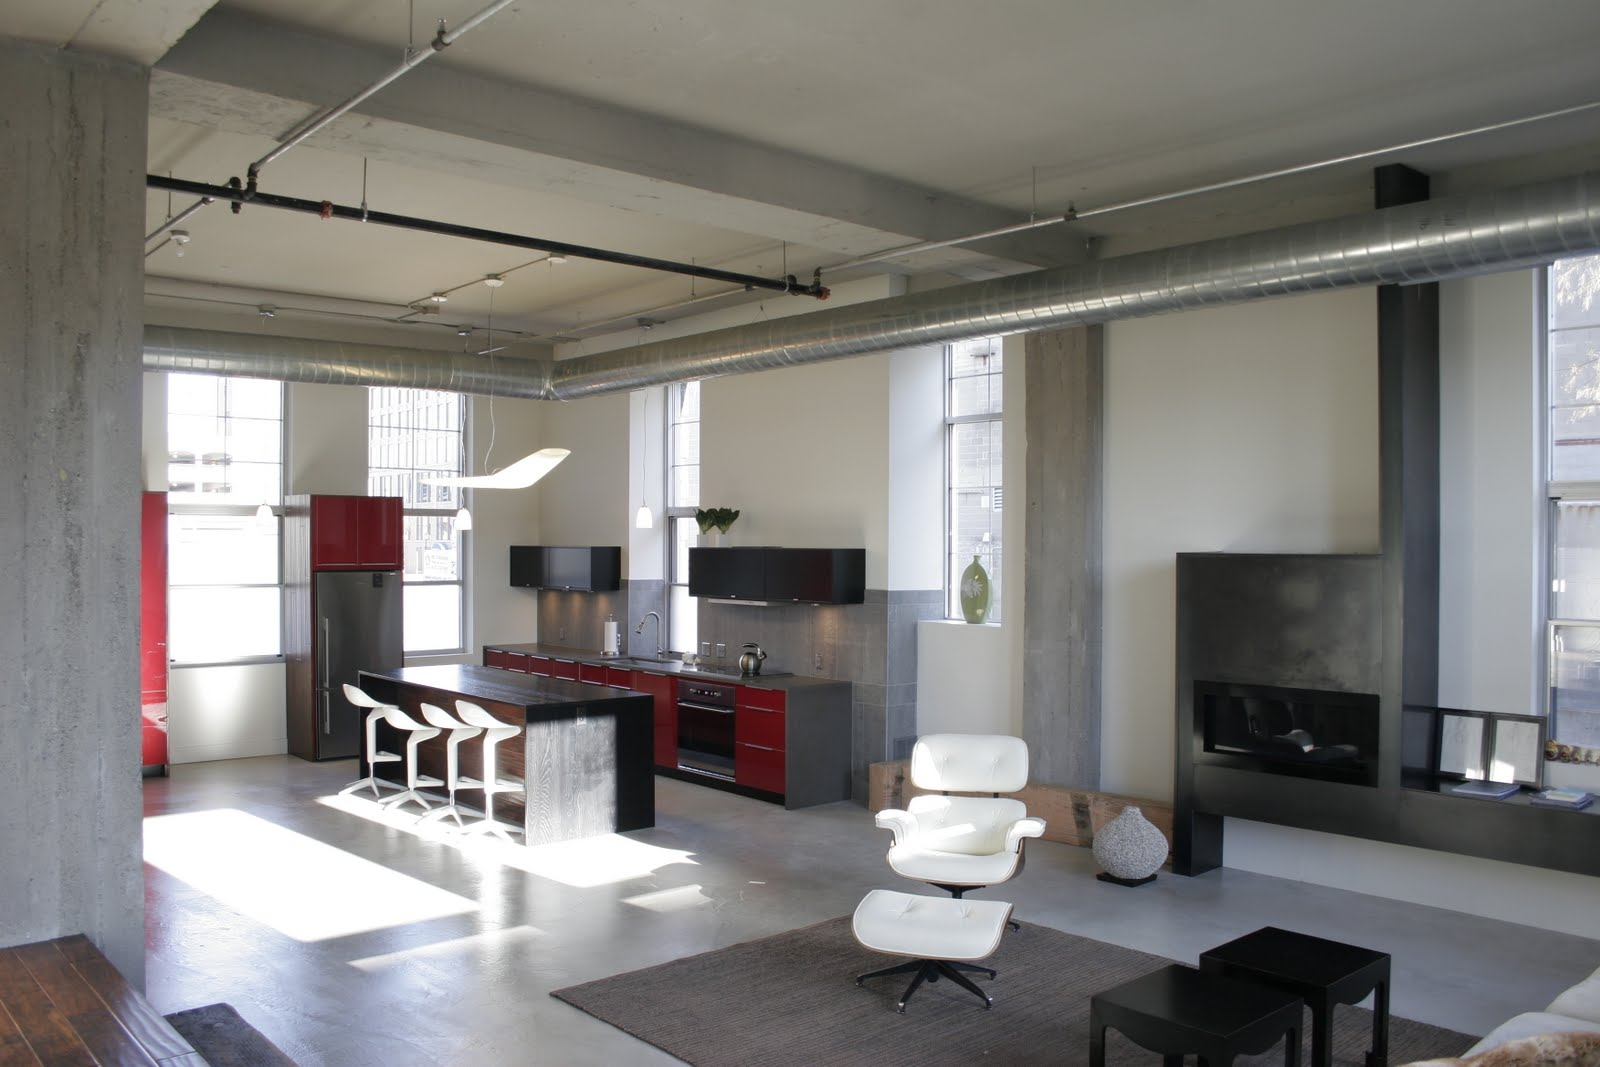 Alchemy architects   weehouse®: alchemy architects brings color ...